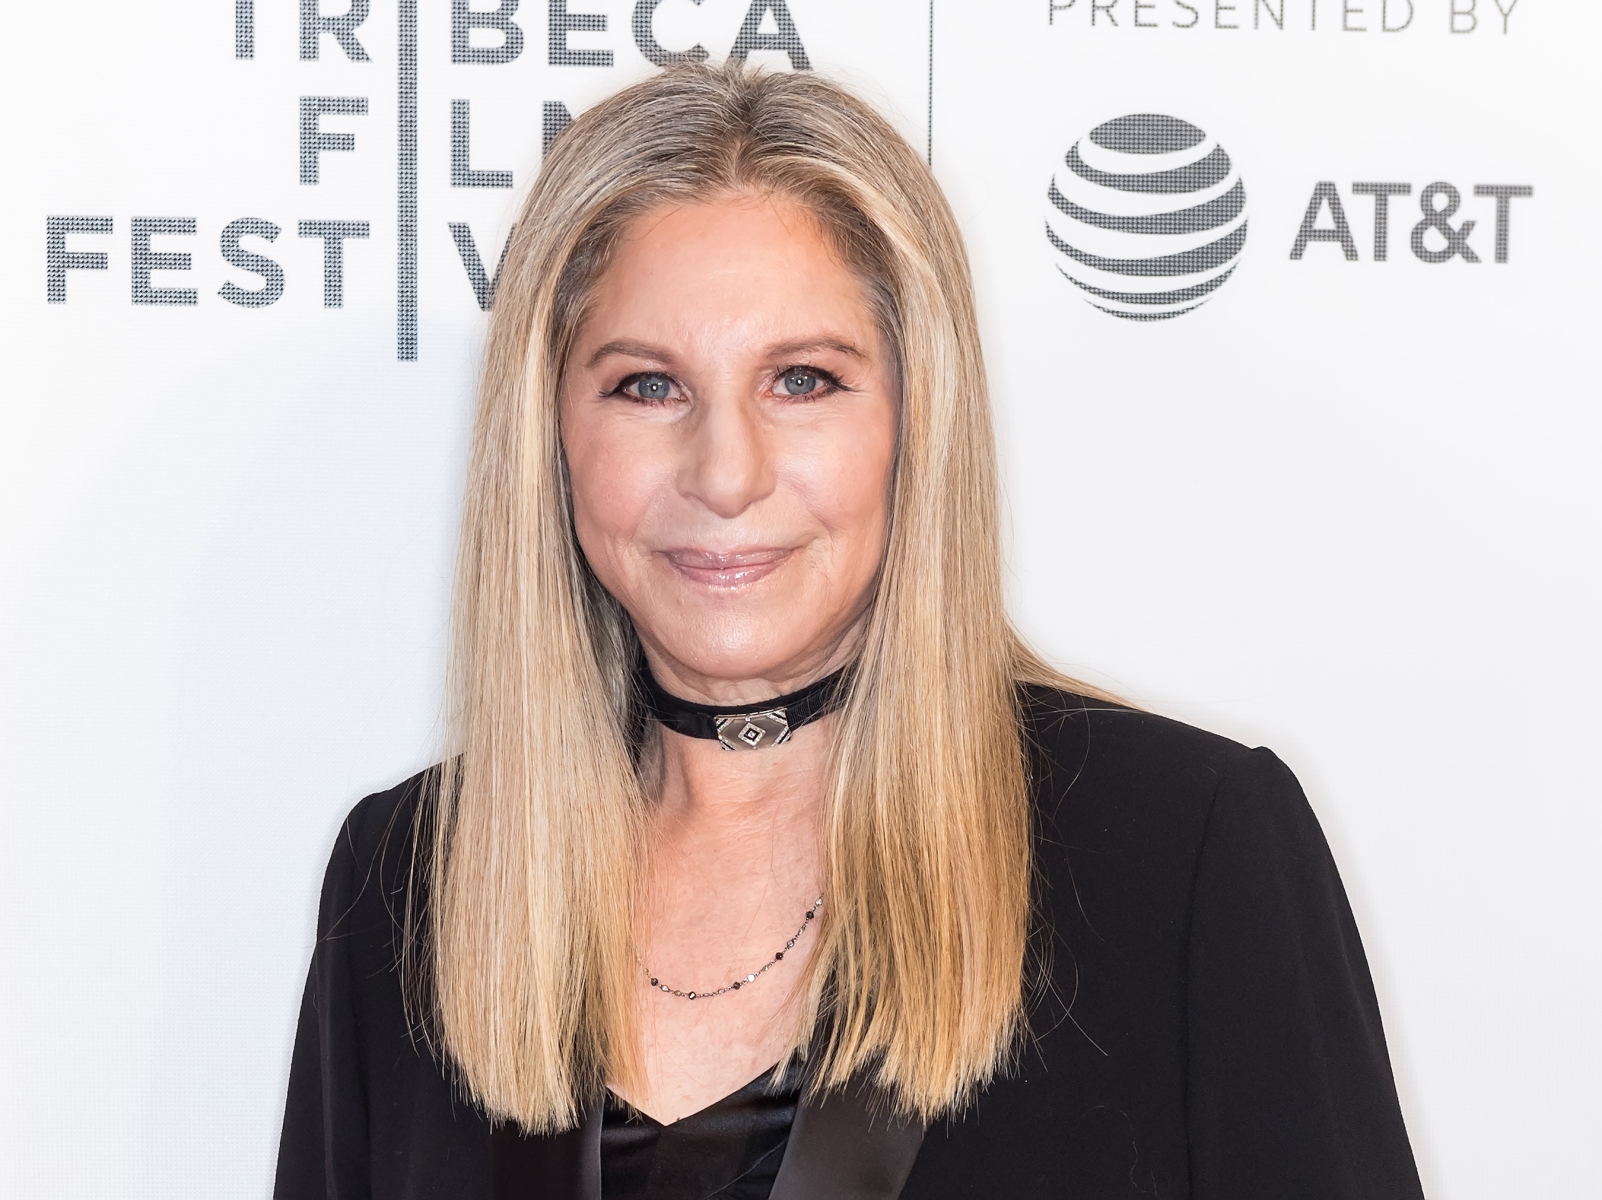 Singer-songwriter Barbra Streisand attends Tribeca Talks: Storytellers during 2017 Tribeca Film Festival at BMCC Tribeca PAC on April 29, 2017 in New York City. Streisand recently released a single slamming Donald Trump. (Photo by Gilbert Carrasquillo/FilmMagic)